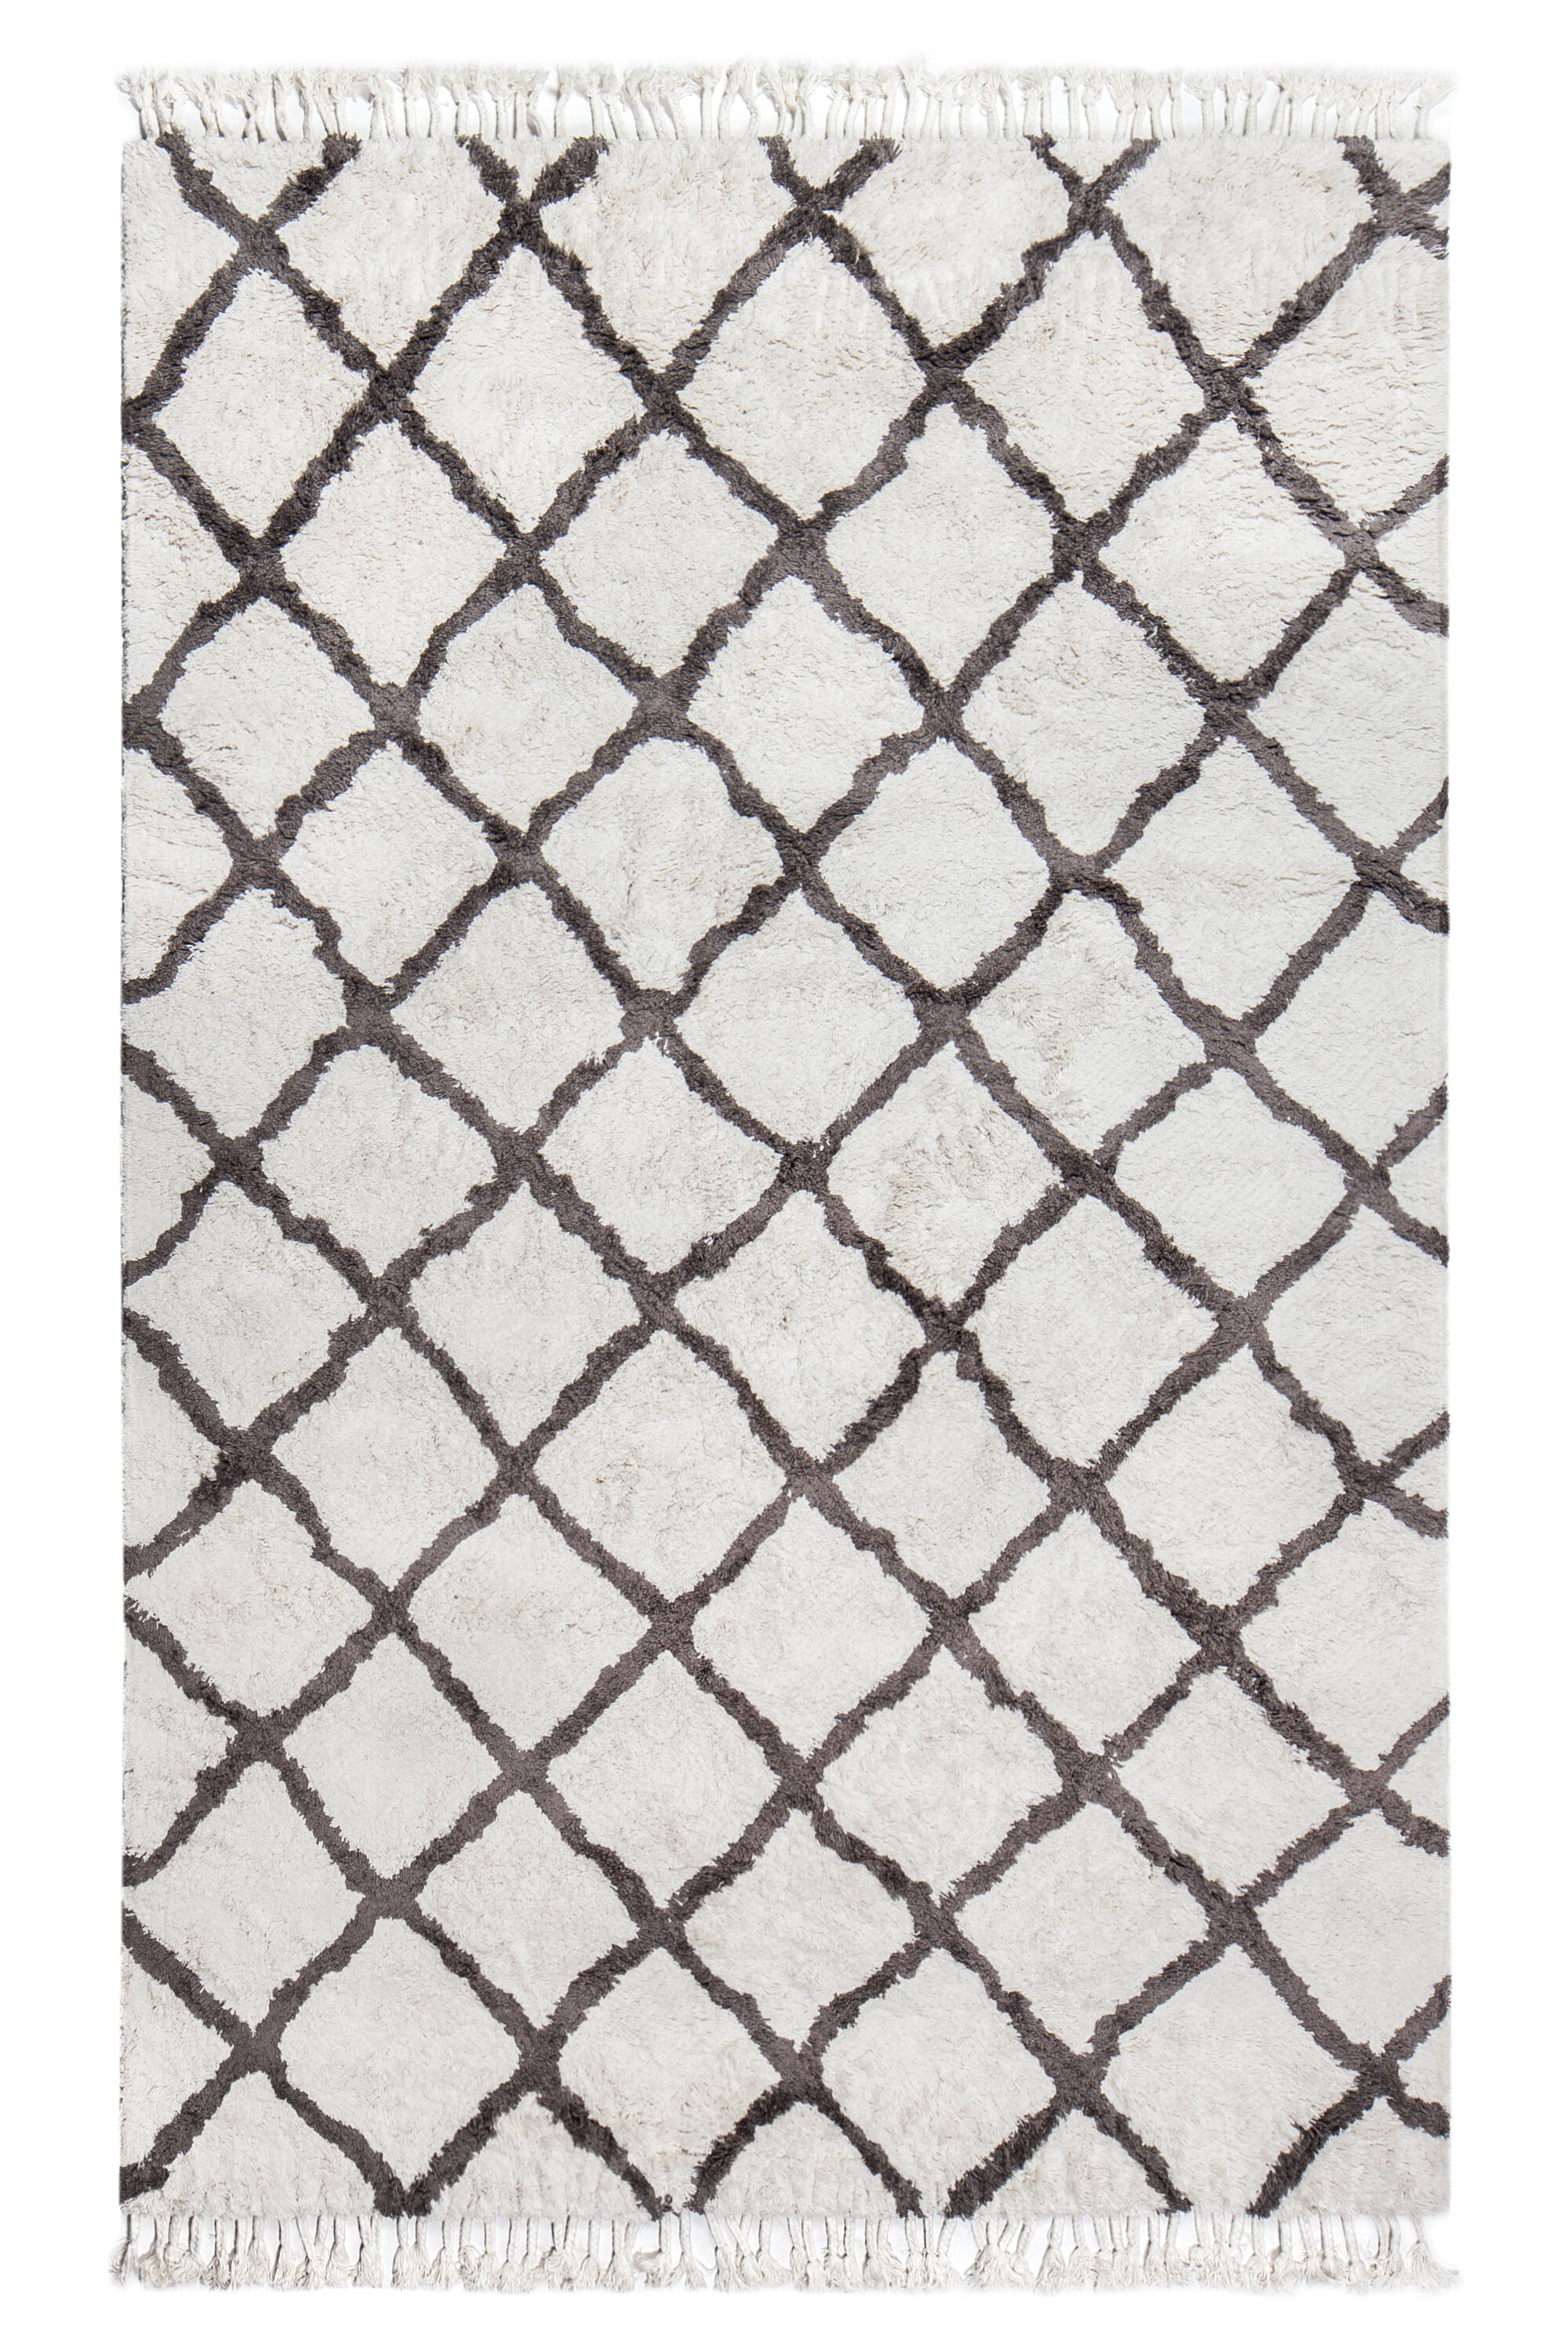 Bamboo Seagrass Tufted Area Rugs You Ll Love In 2021 Wayfair